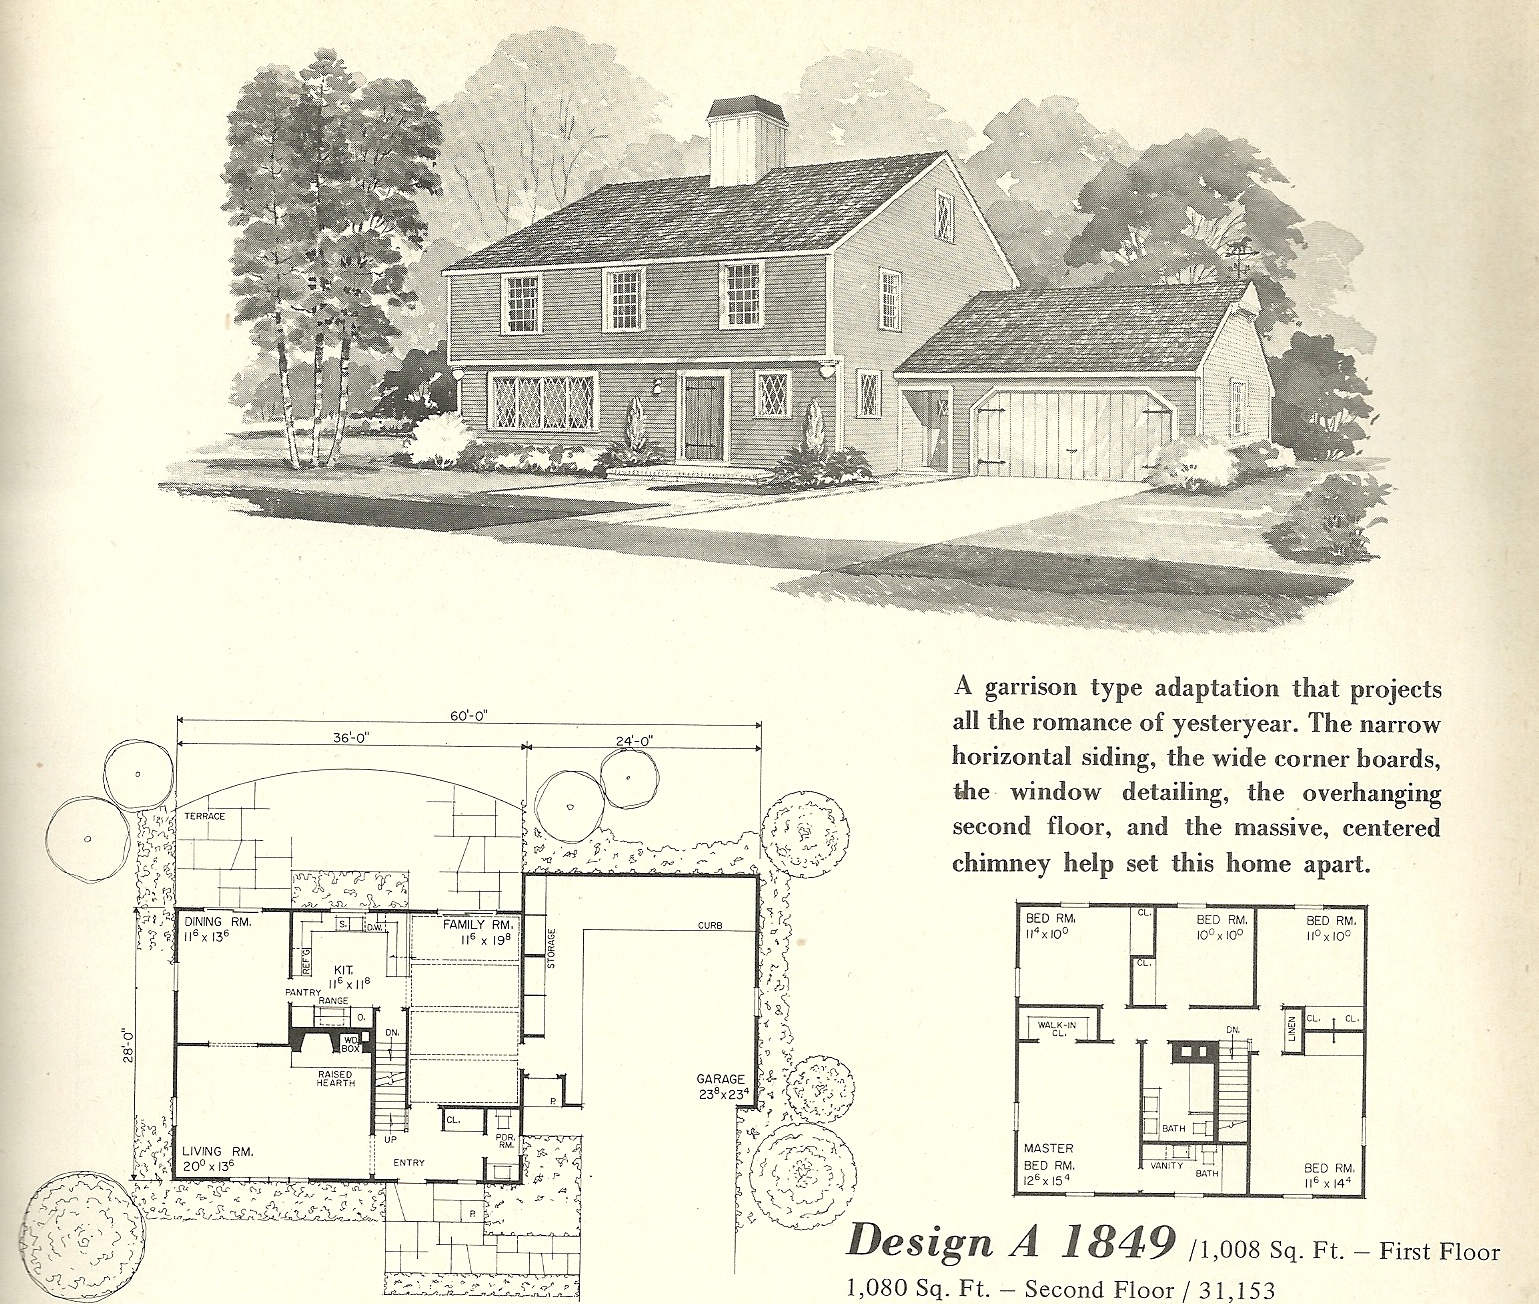 Vintage house plans 1849 antique alter ego for Antique colonial house plans